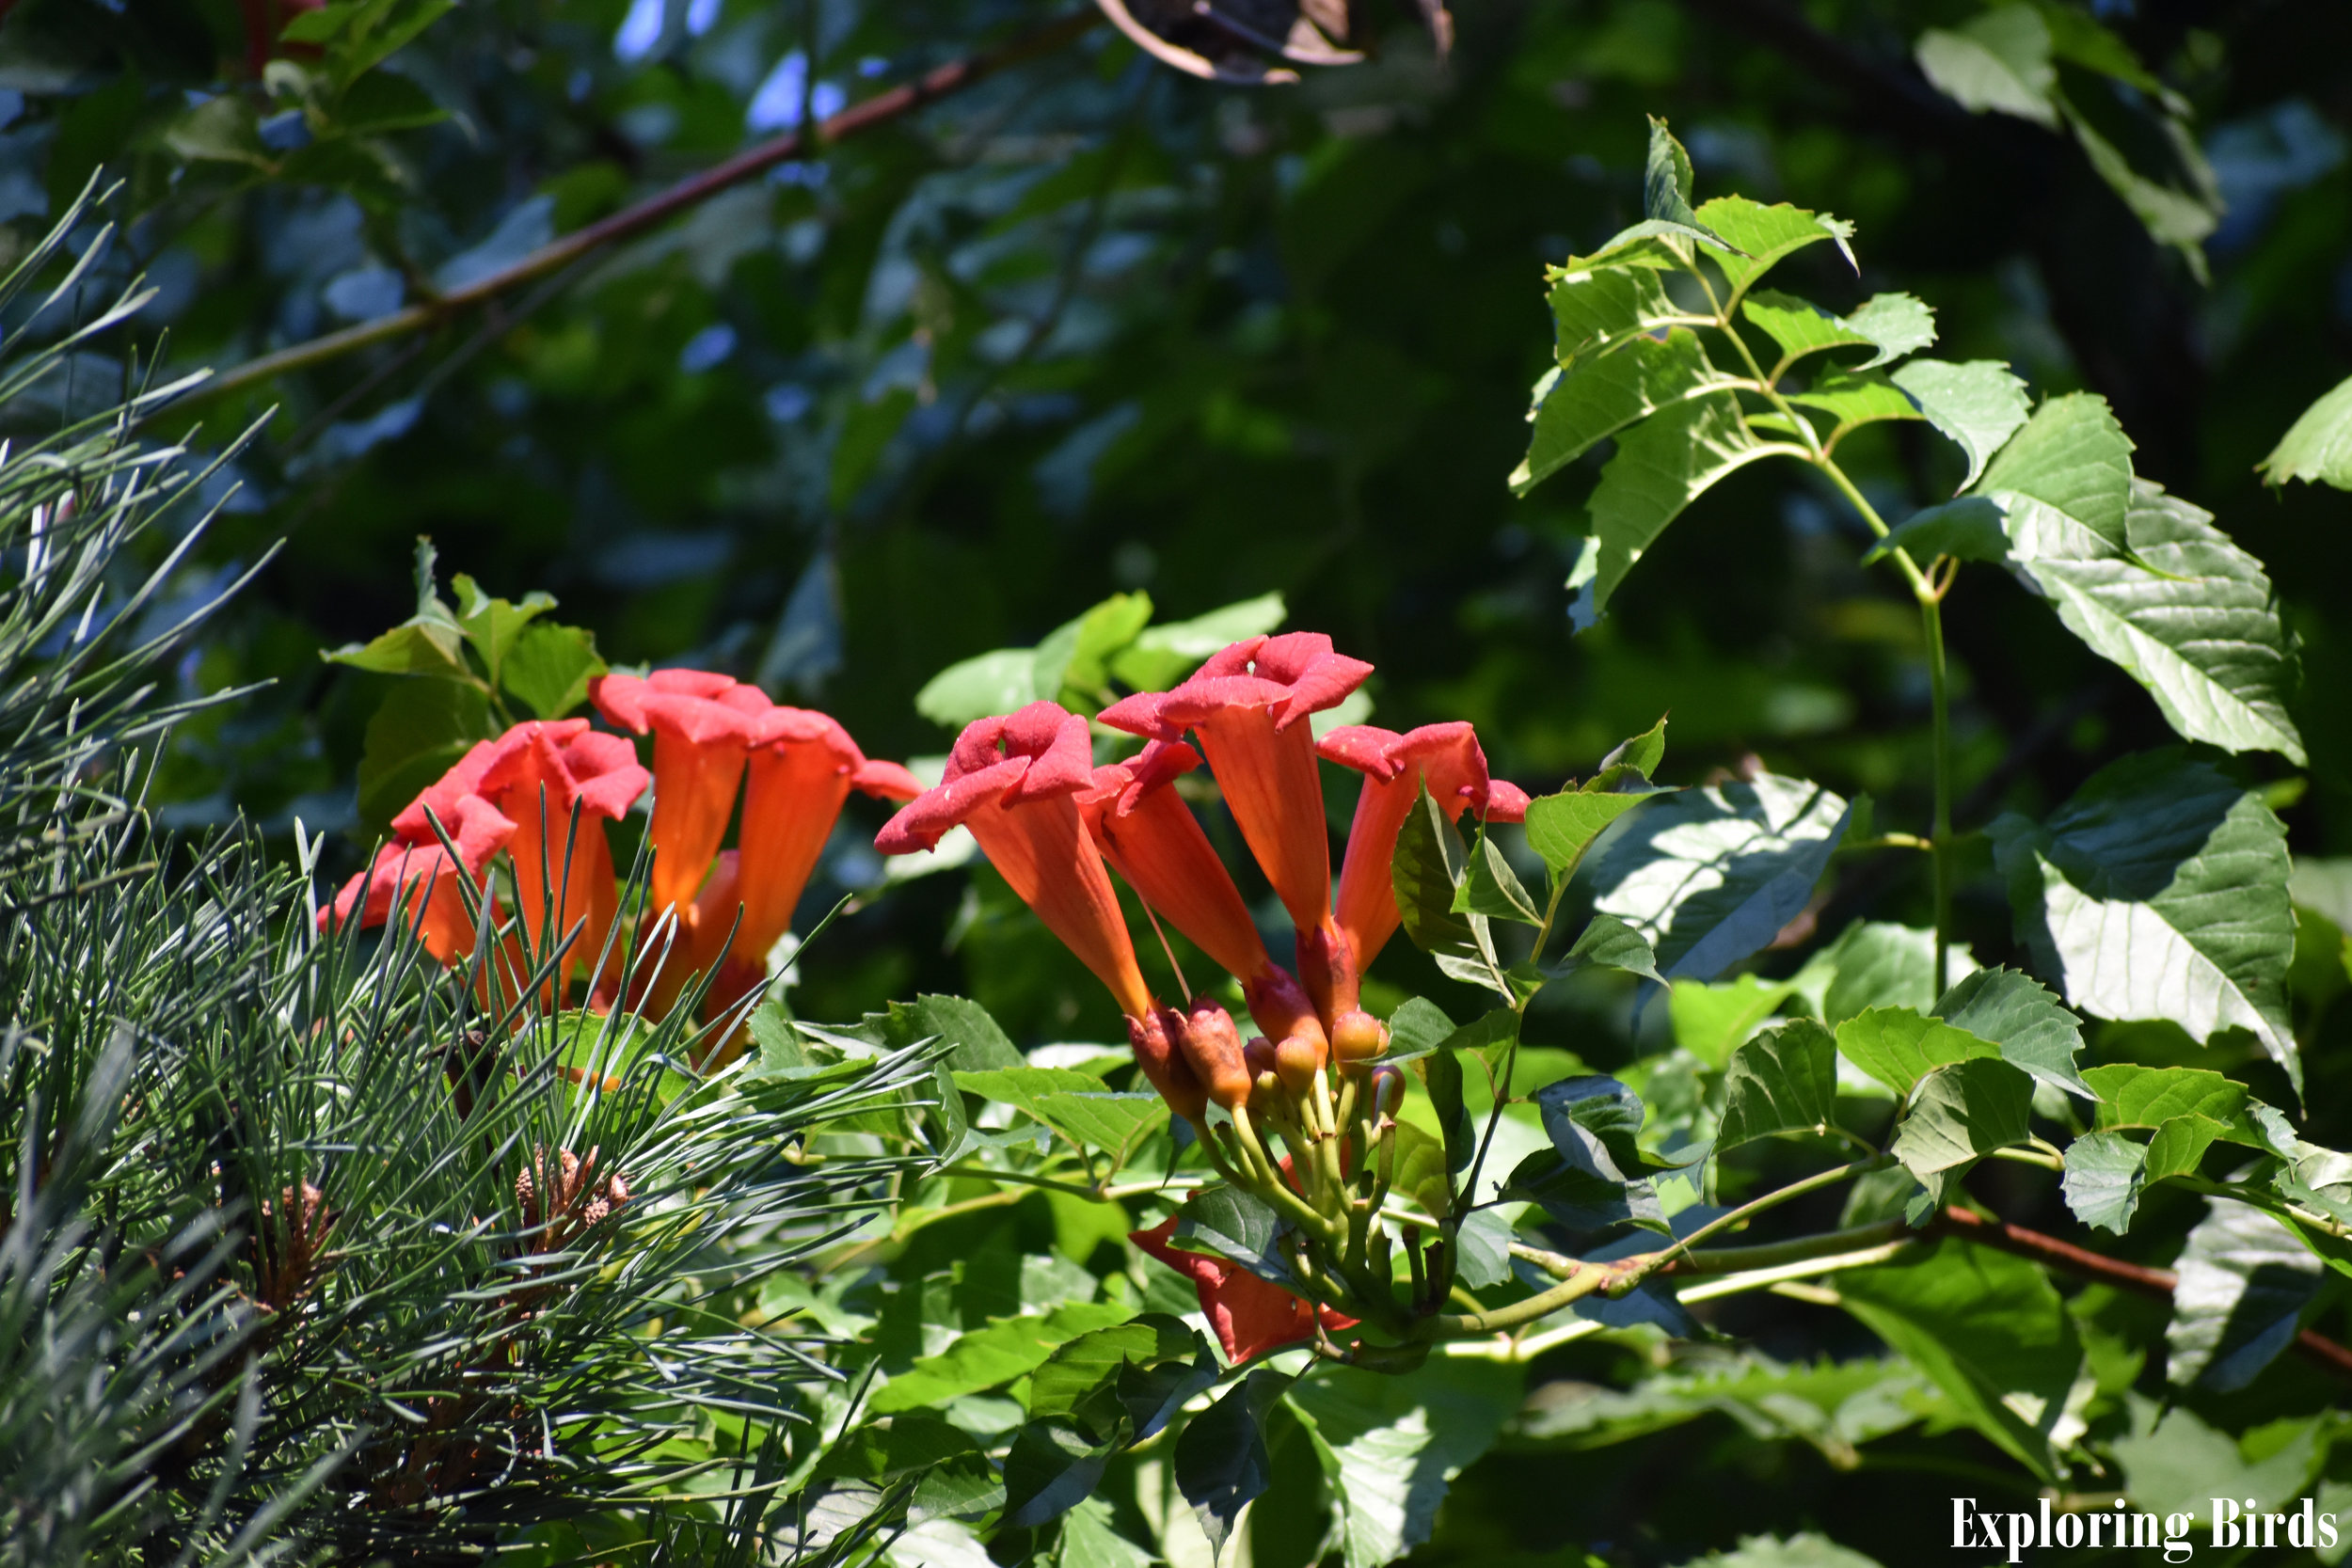 Trumpet Creeper is a flower that attracts hummingbirds